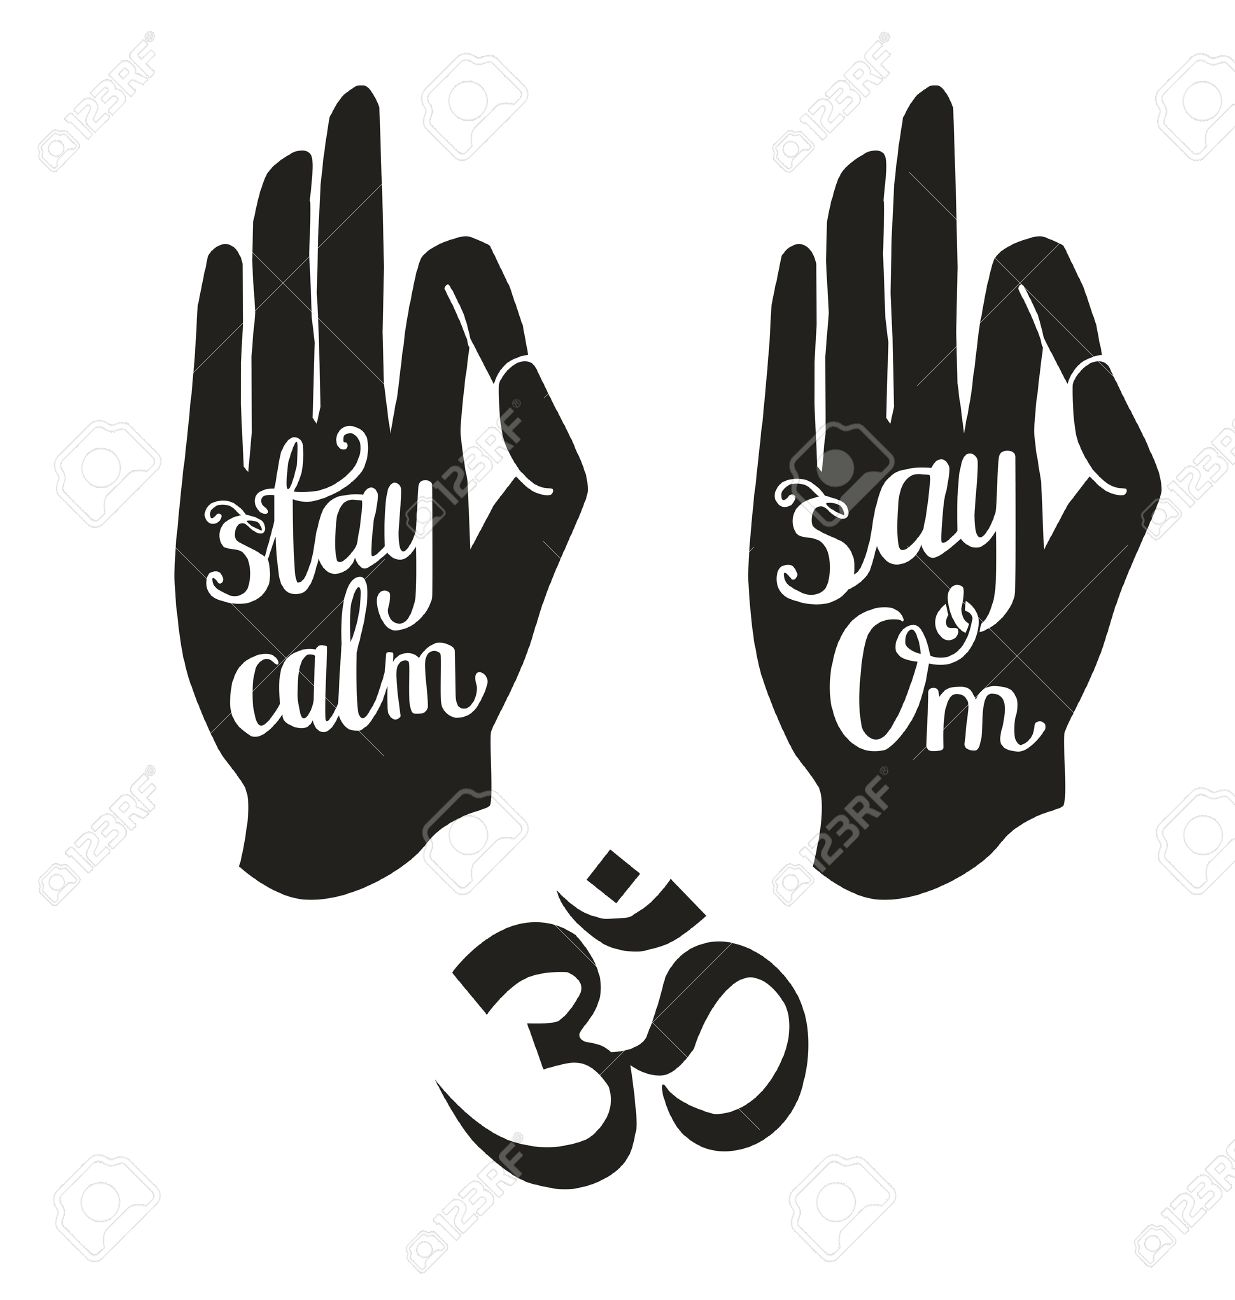 And White Vector Illustrations With Lettering Palm In Yoga Gesture Hand Written Phrases Stay Calm Say Om Hindu Symbol Jnana Or Chin Mudra